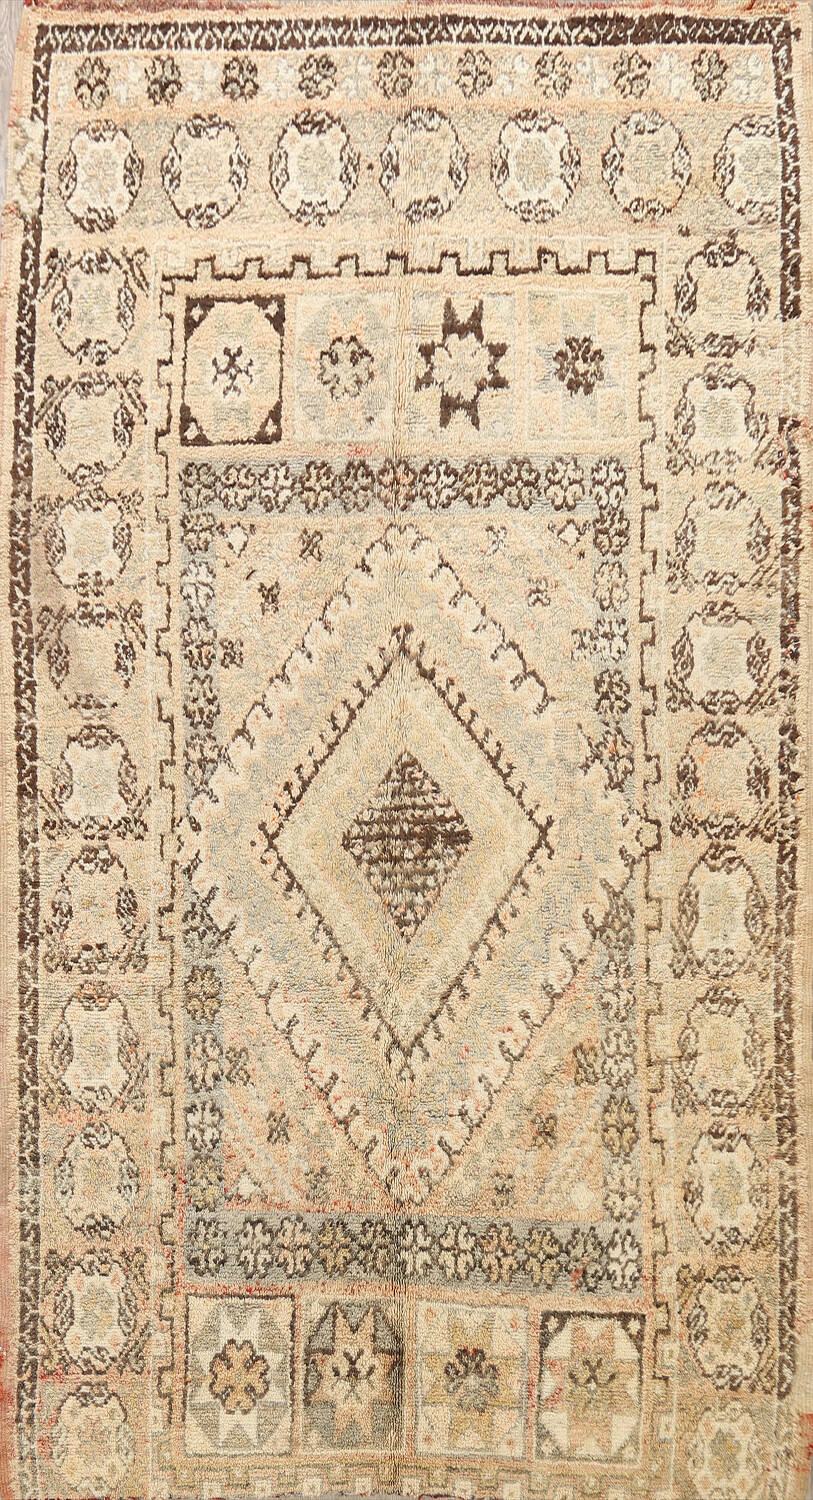 Antique Tribal Moroccan Oriental Area Rug 7x11 image 1